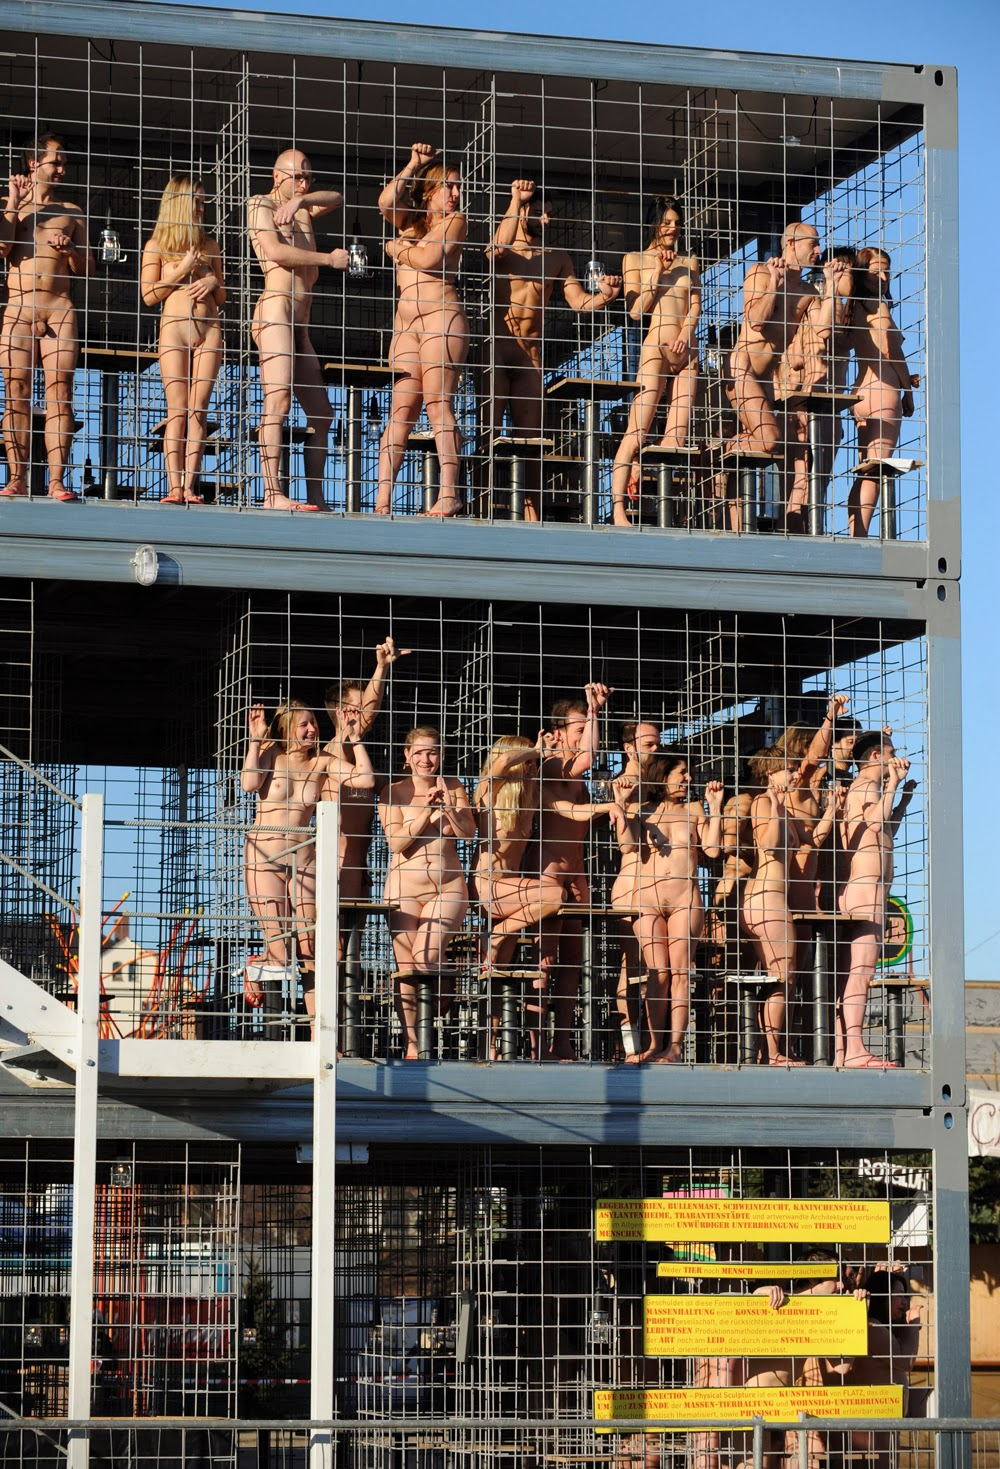 Naked cage Protest at 0 degrees